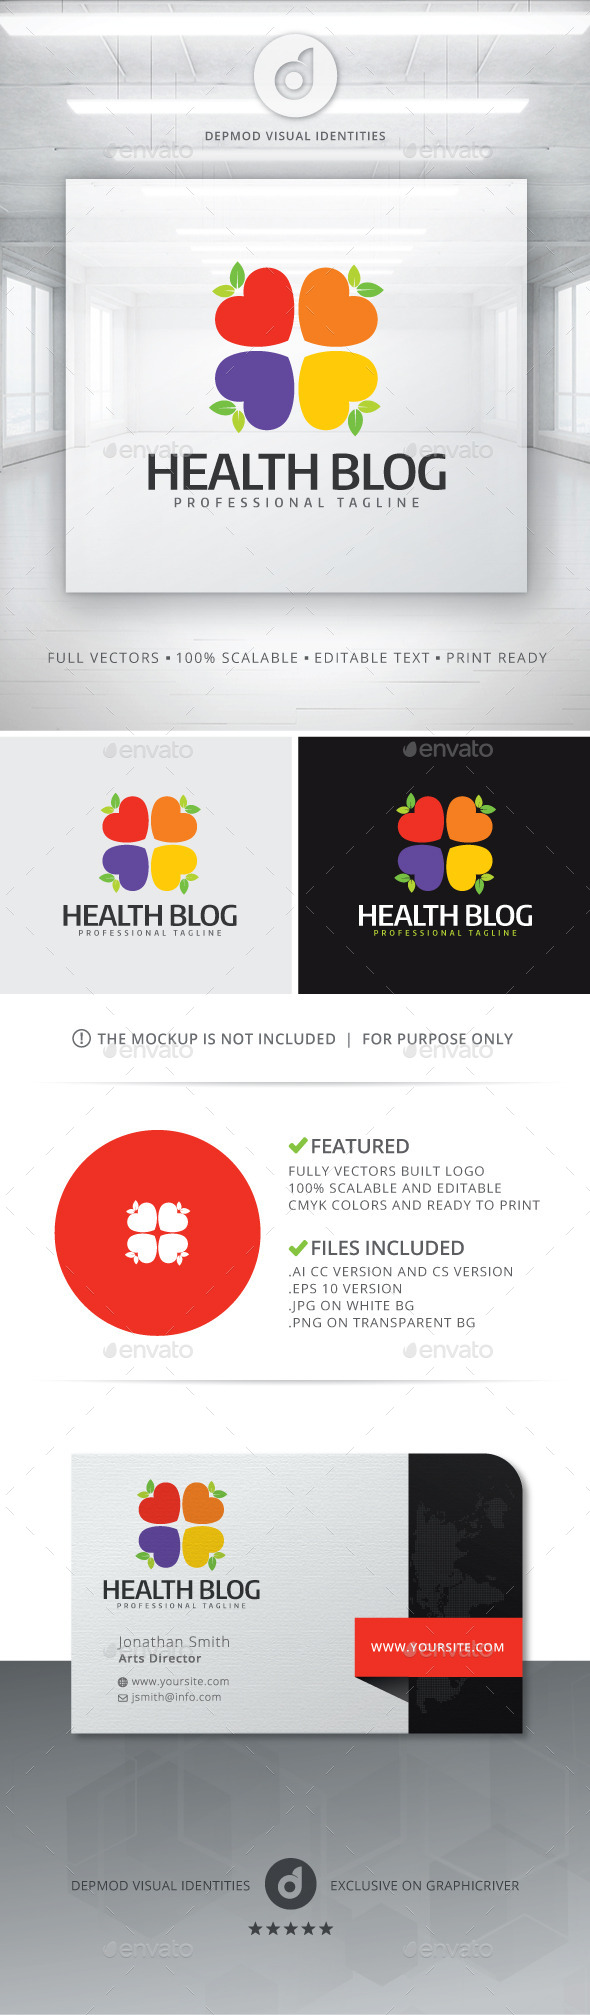 GraphicRiver Health Blog Logo 11314445